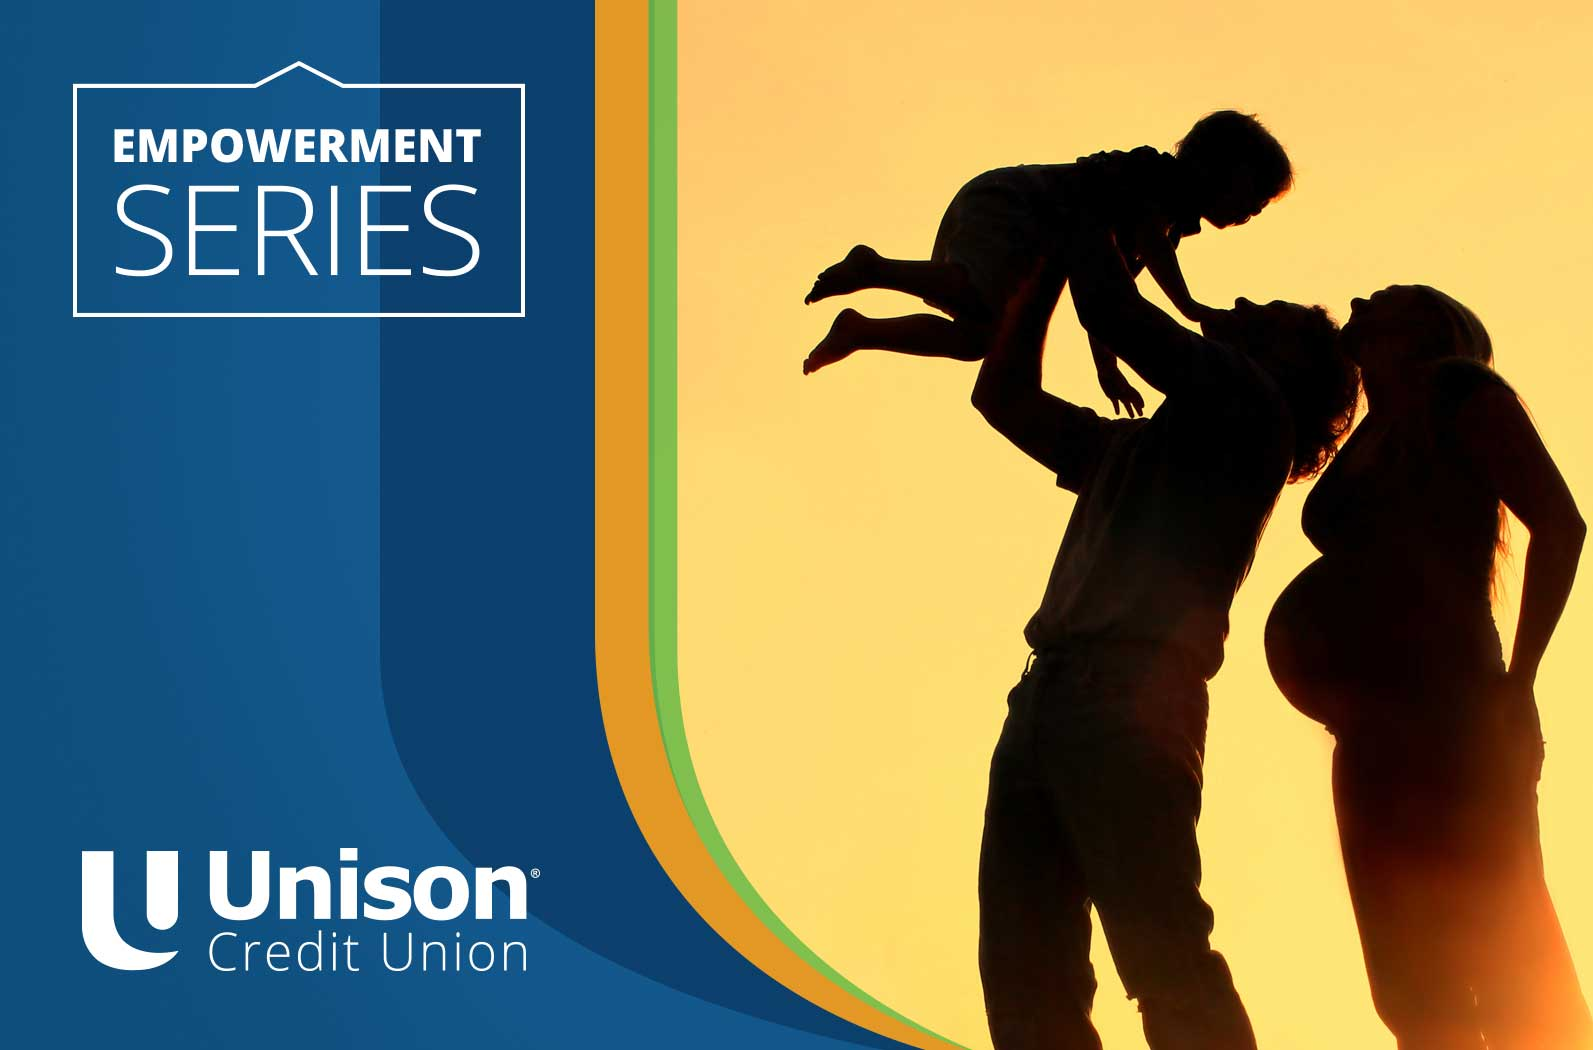 empowerment series for family loans